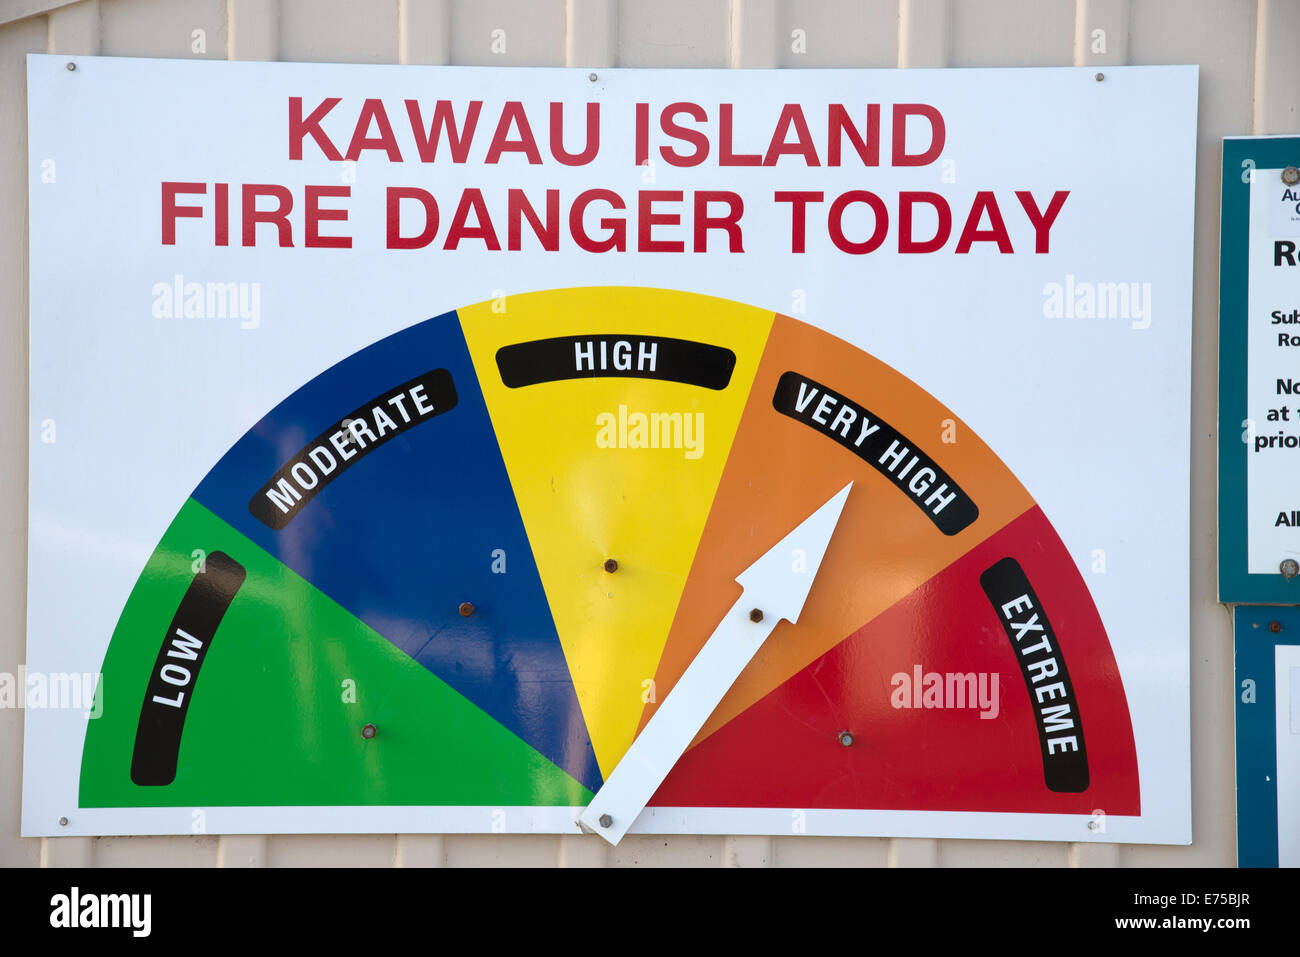 Fire danger and risk indicator board for Kawau Island on the quay at Sandspit New Zealand - Stock Image